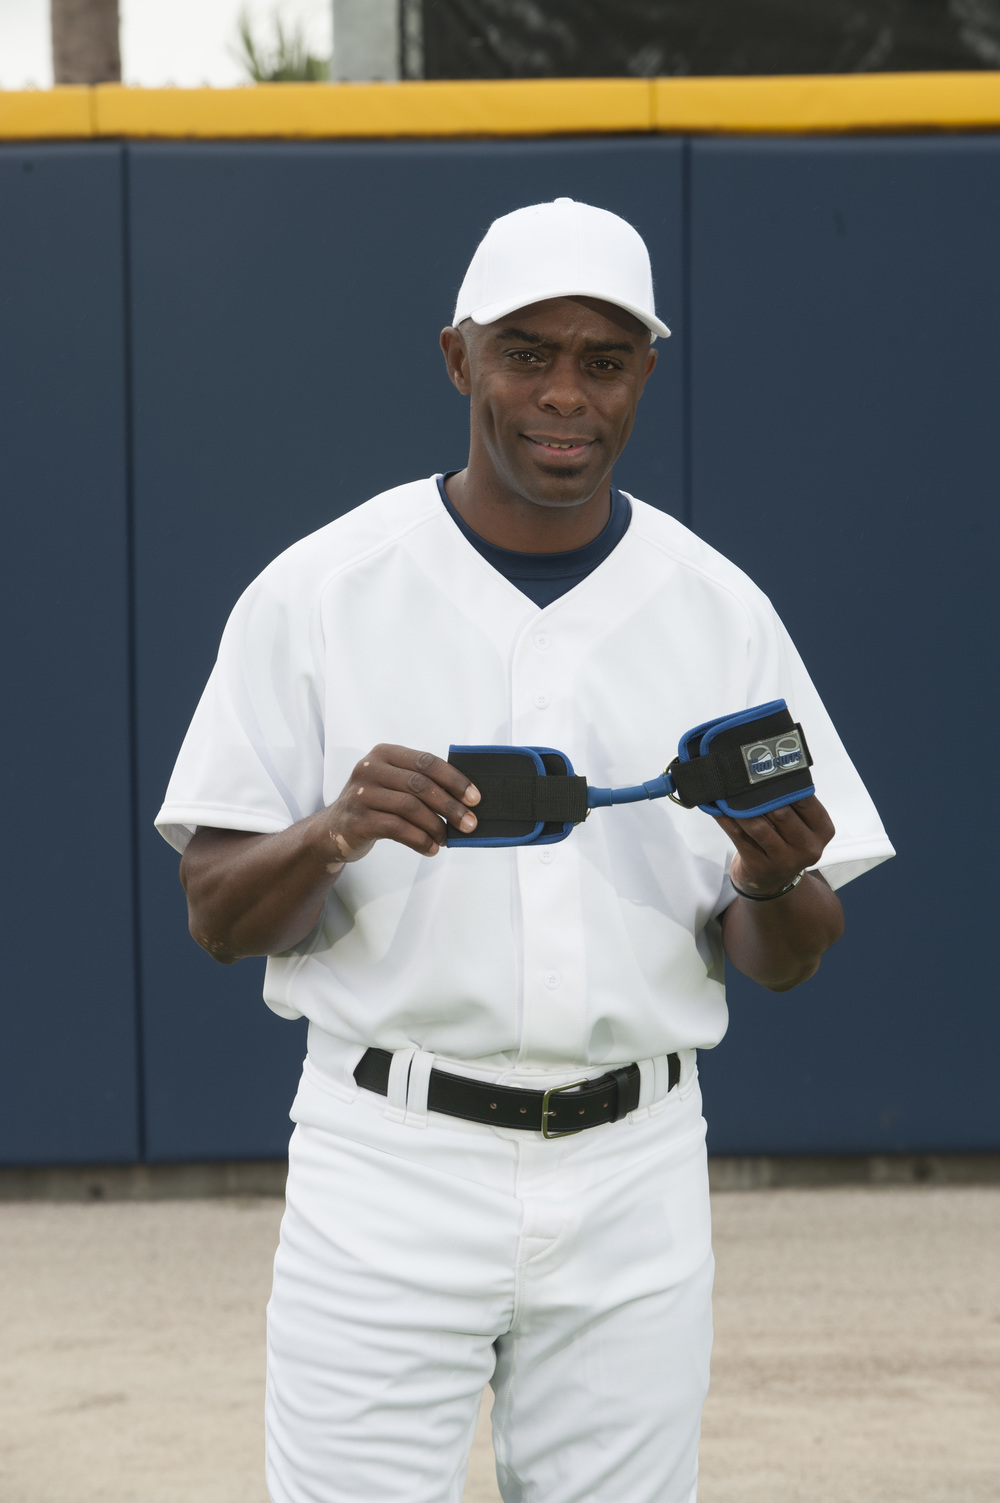 Delino with the Pro Cuffs